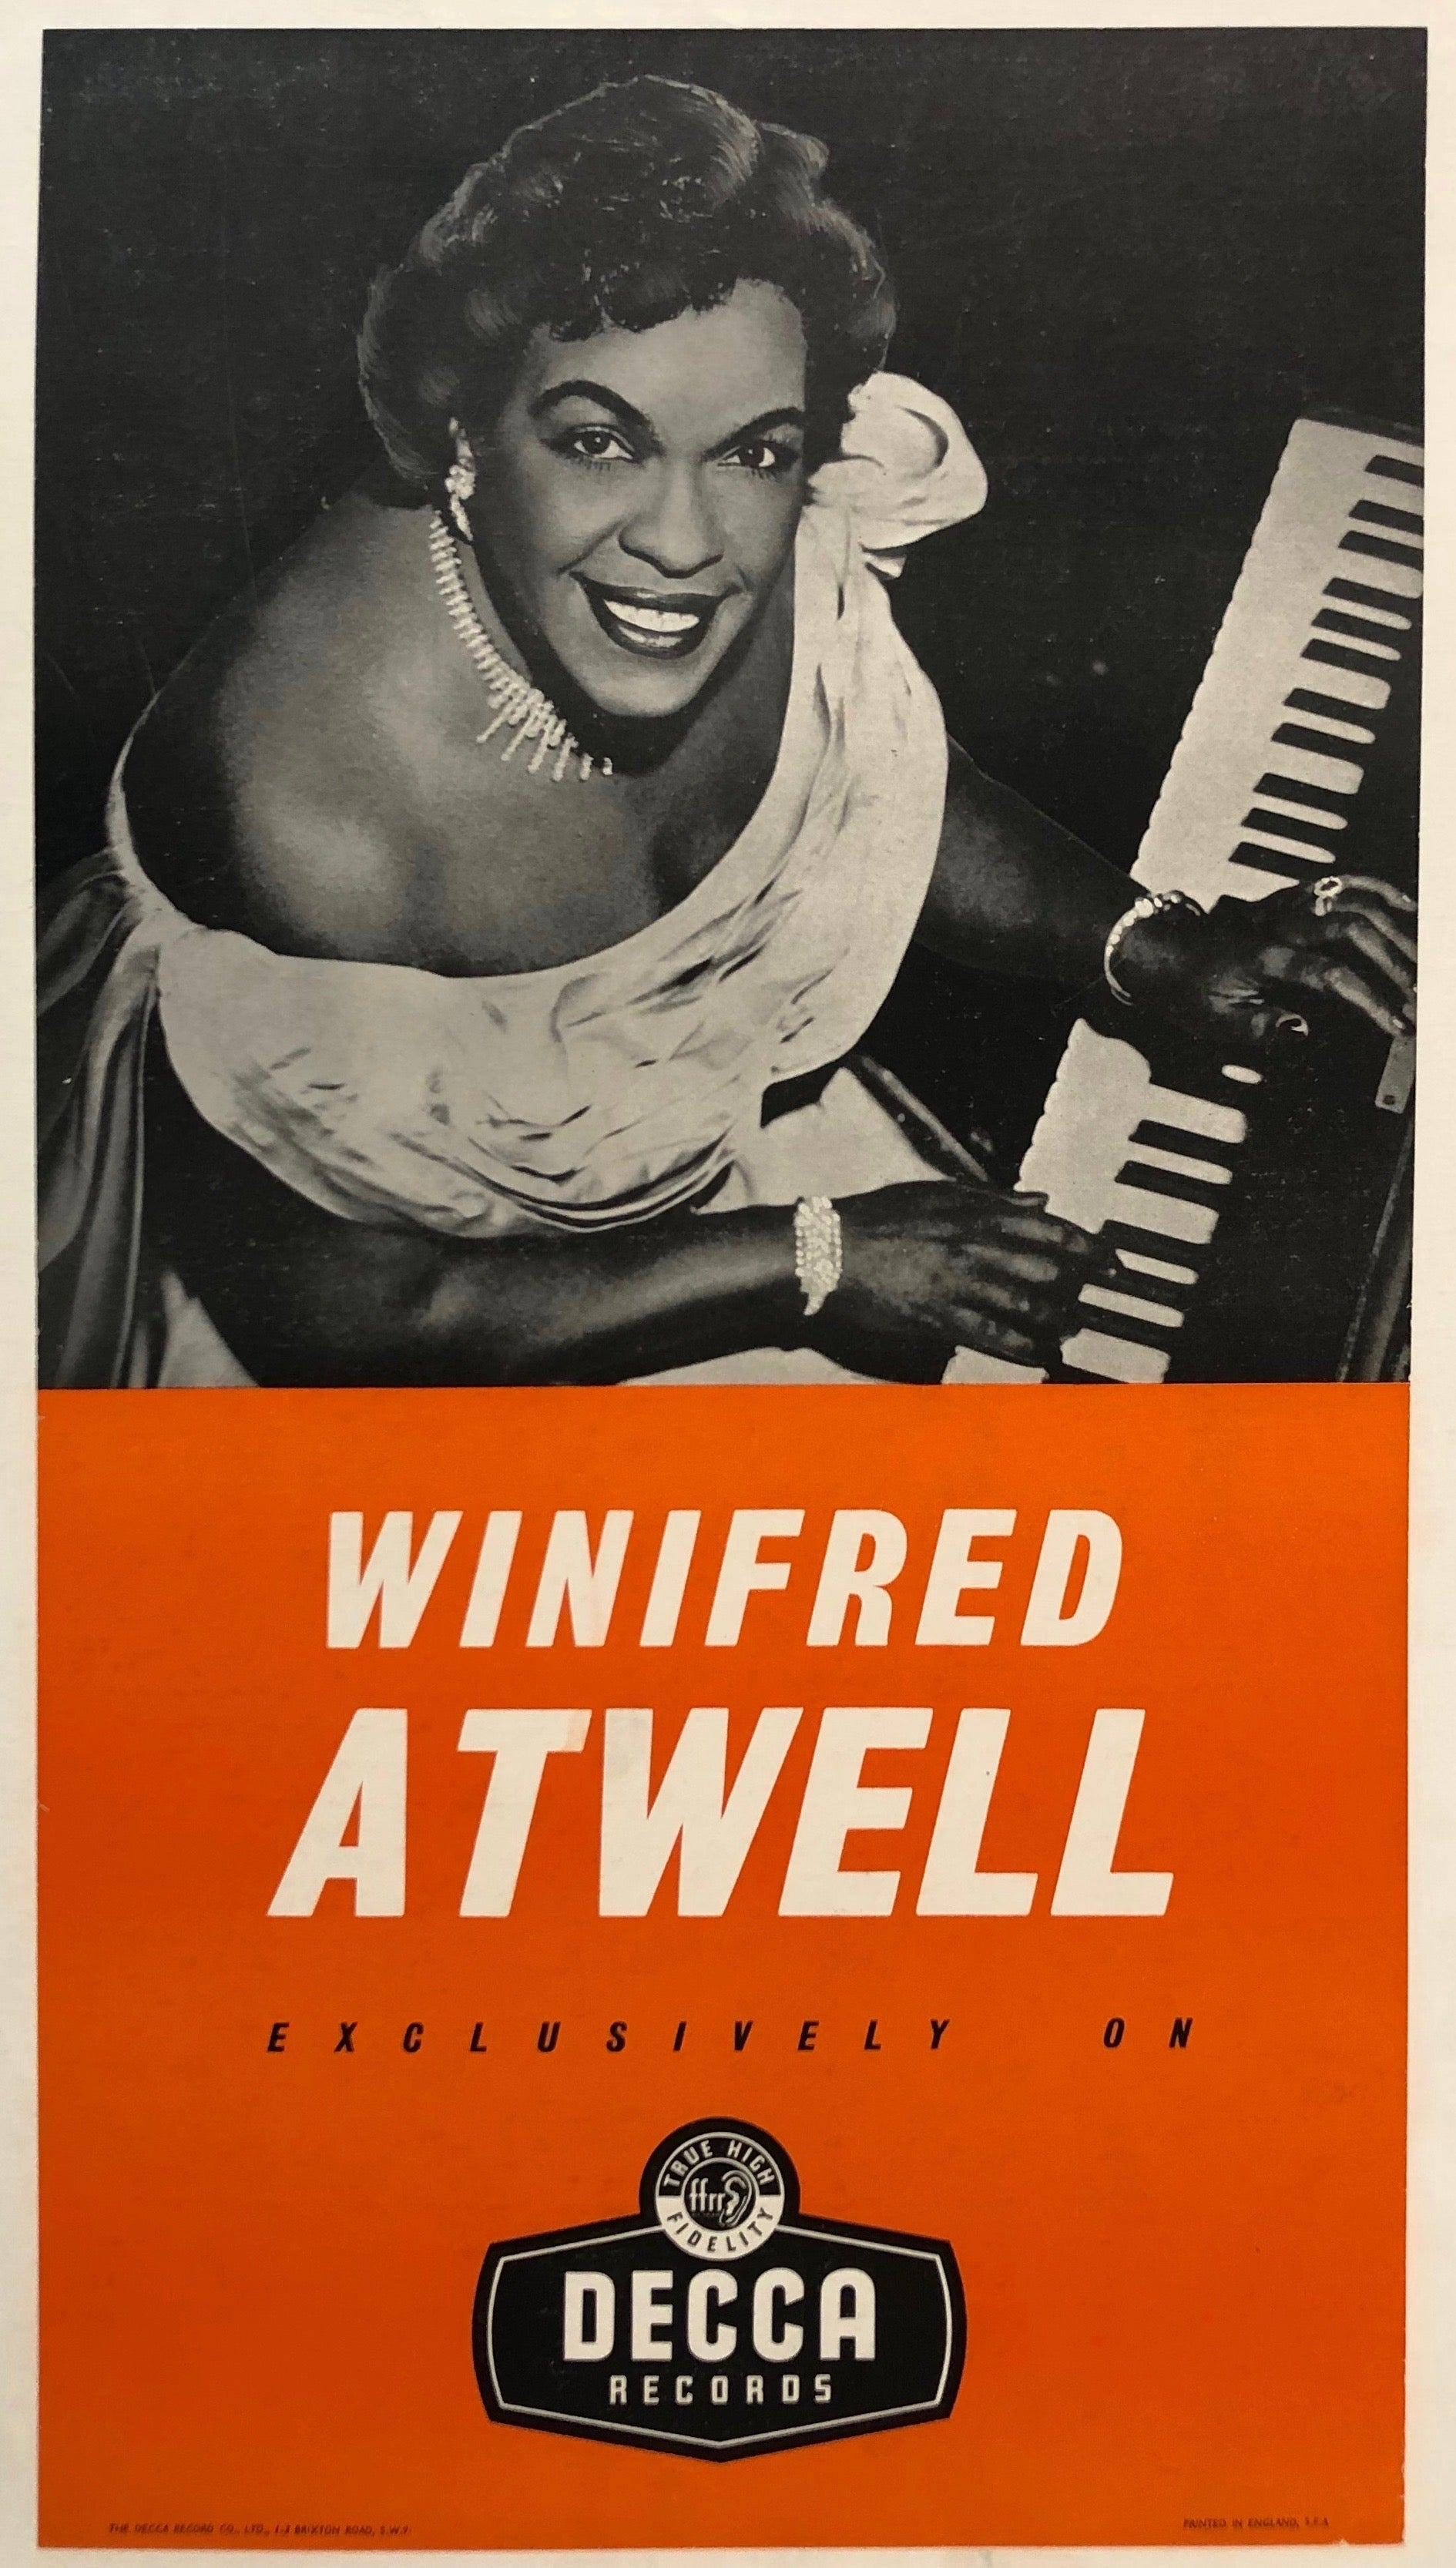 Winifred Atwell Exclusively On Decca Records